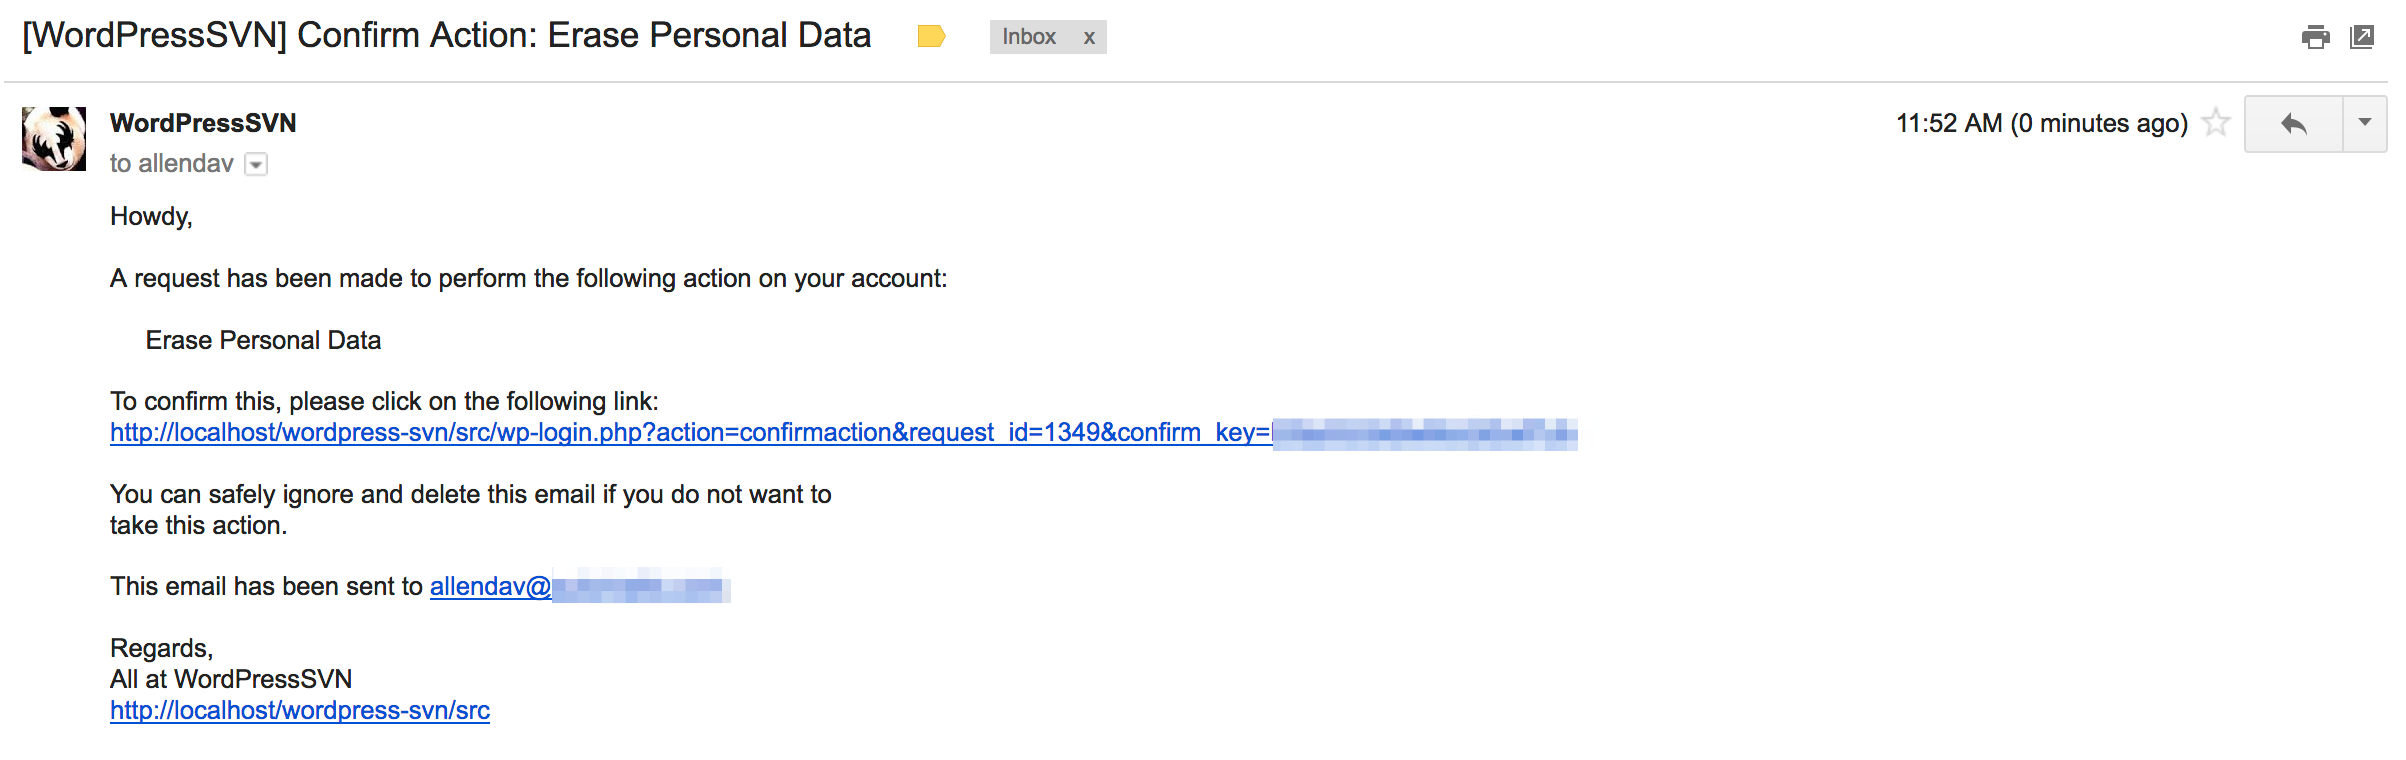 Example of the email a user receives when you send a request to confirm identity in response to a Right to Erasure request